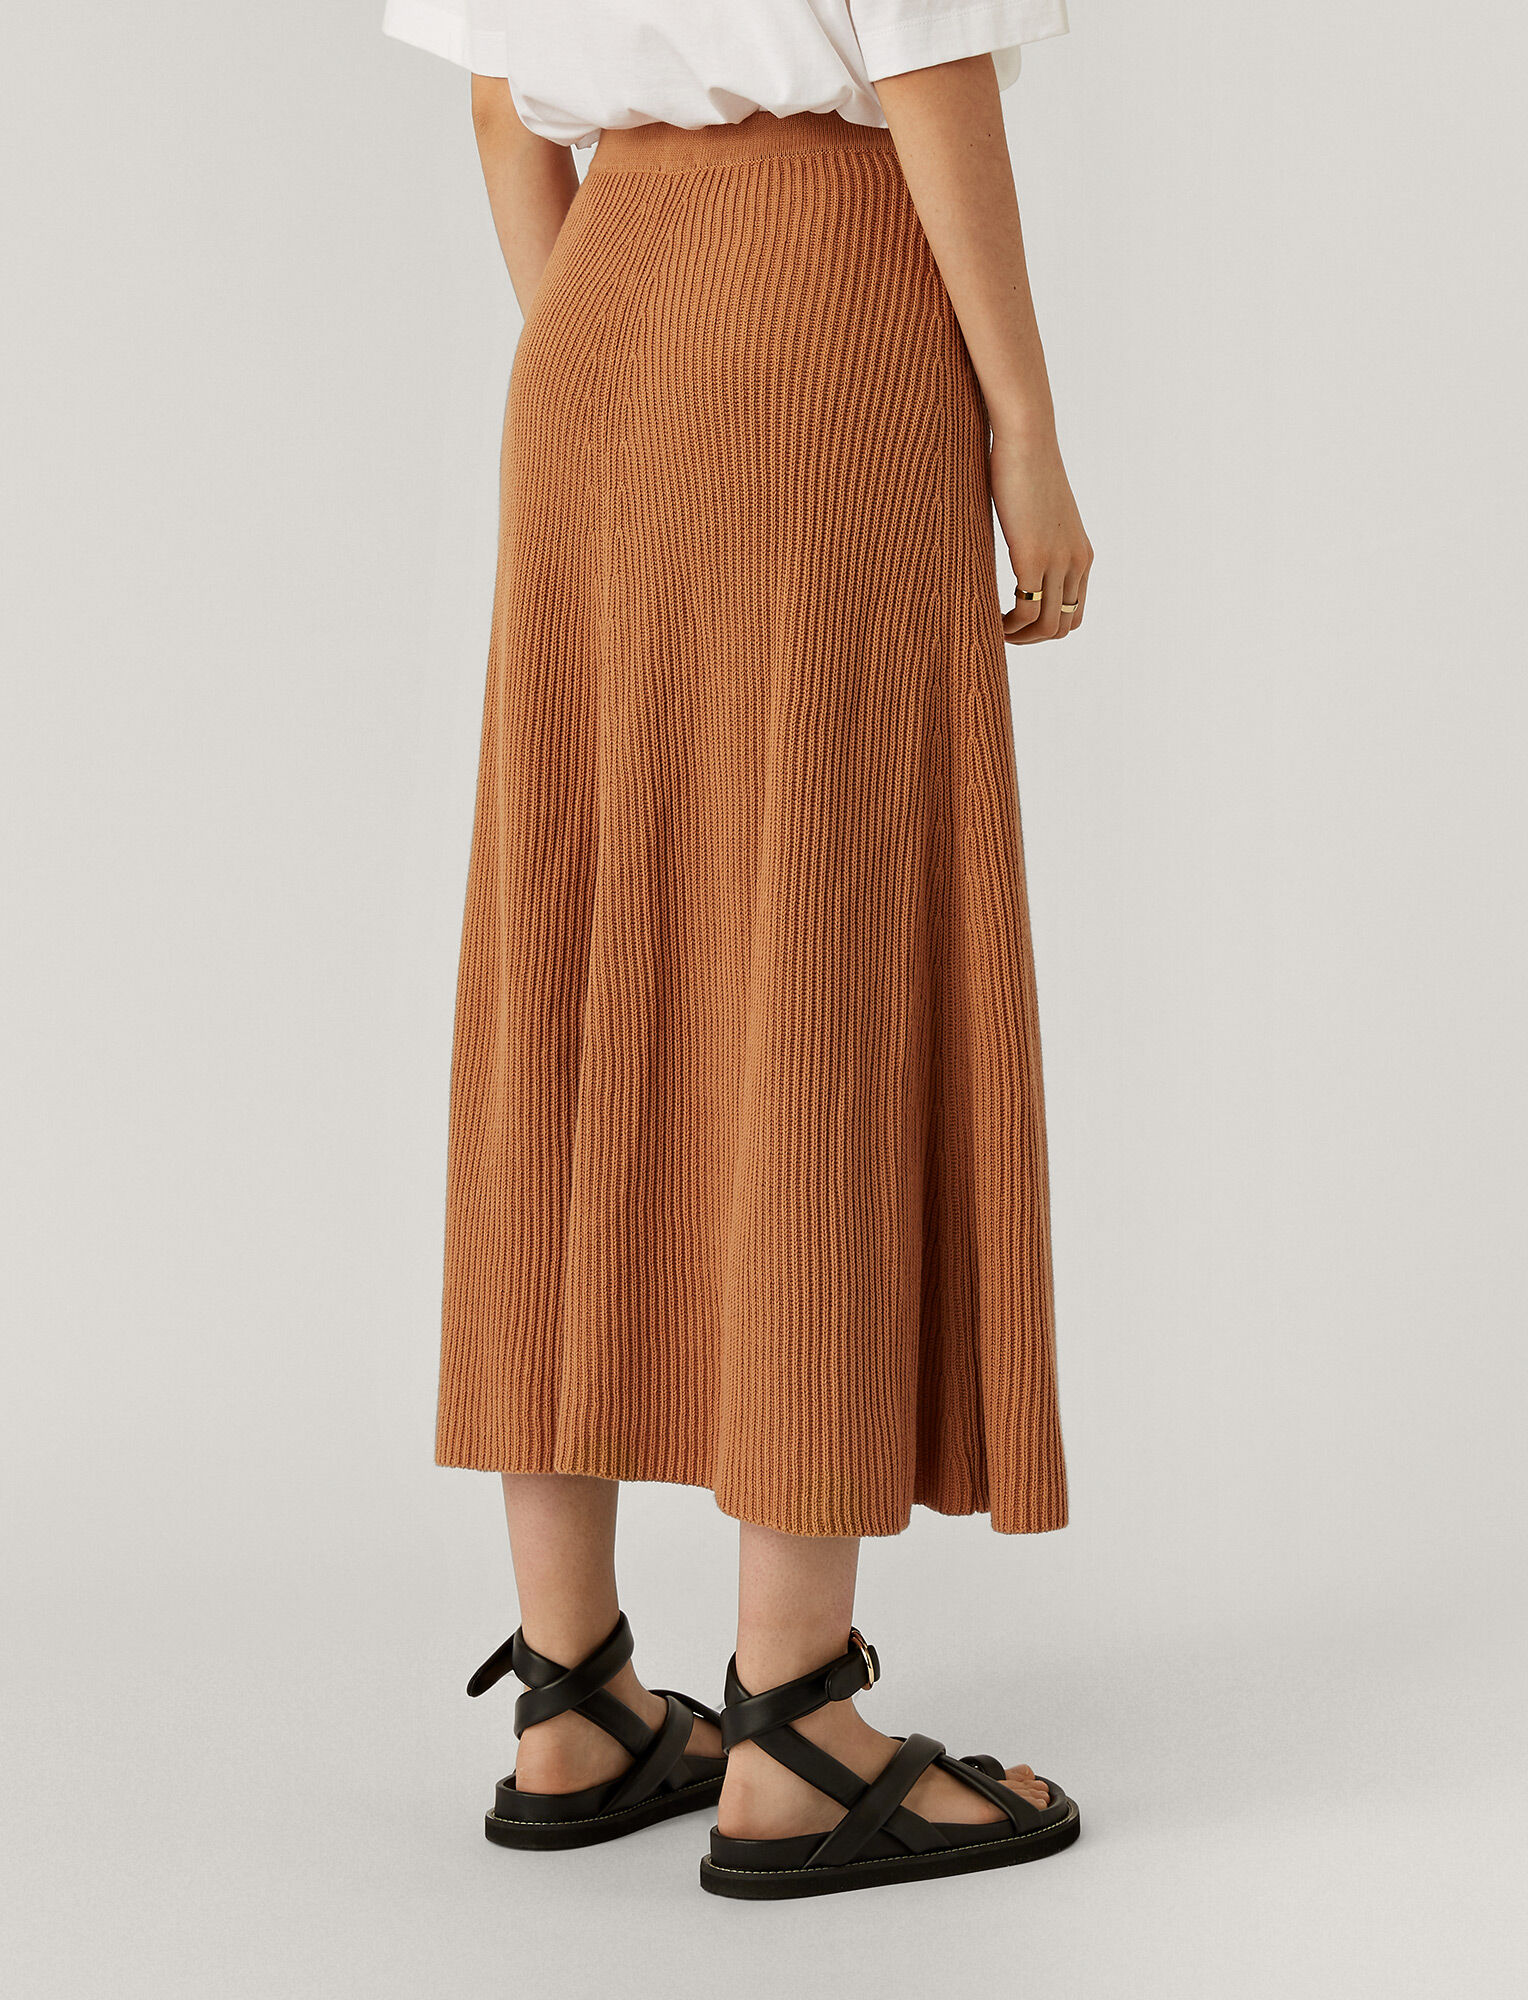 Joseph, Cote Anglaise Skirt, in DUSTY ROSE